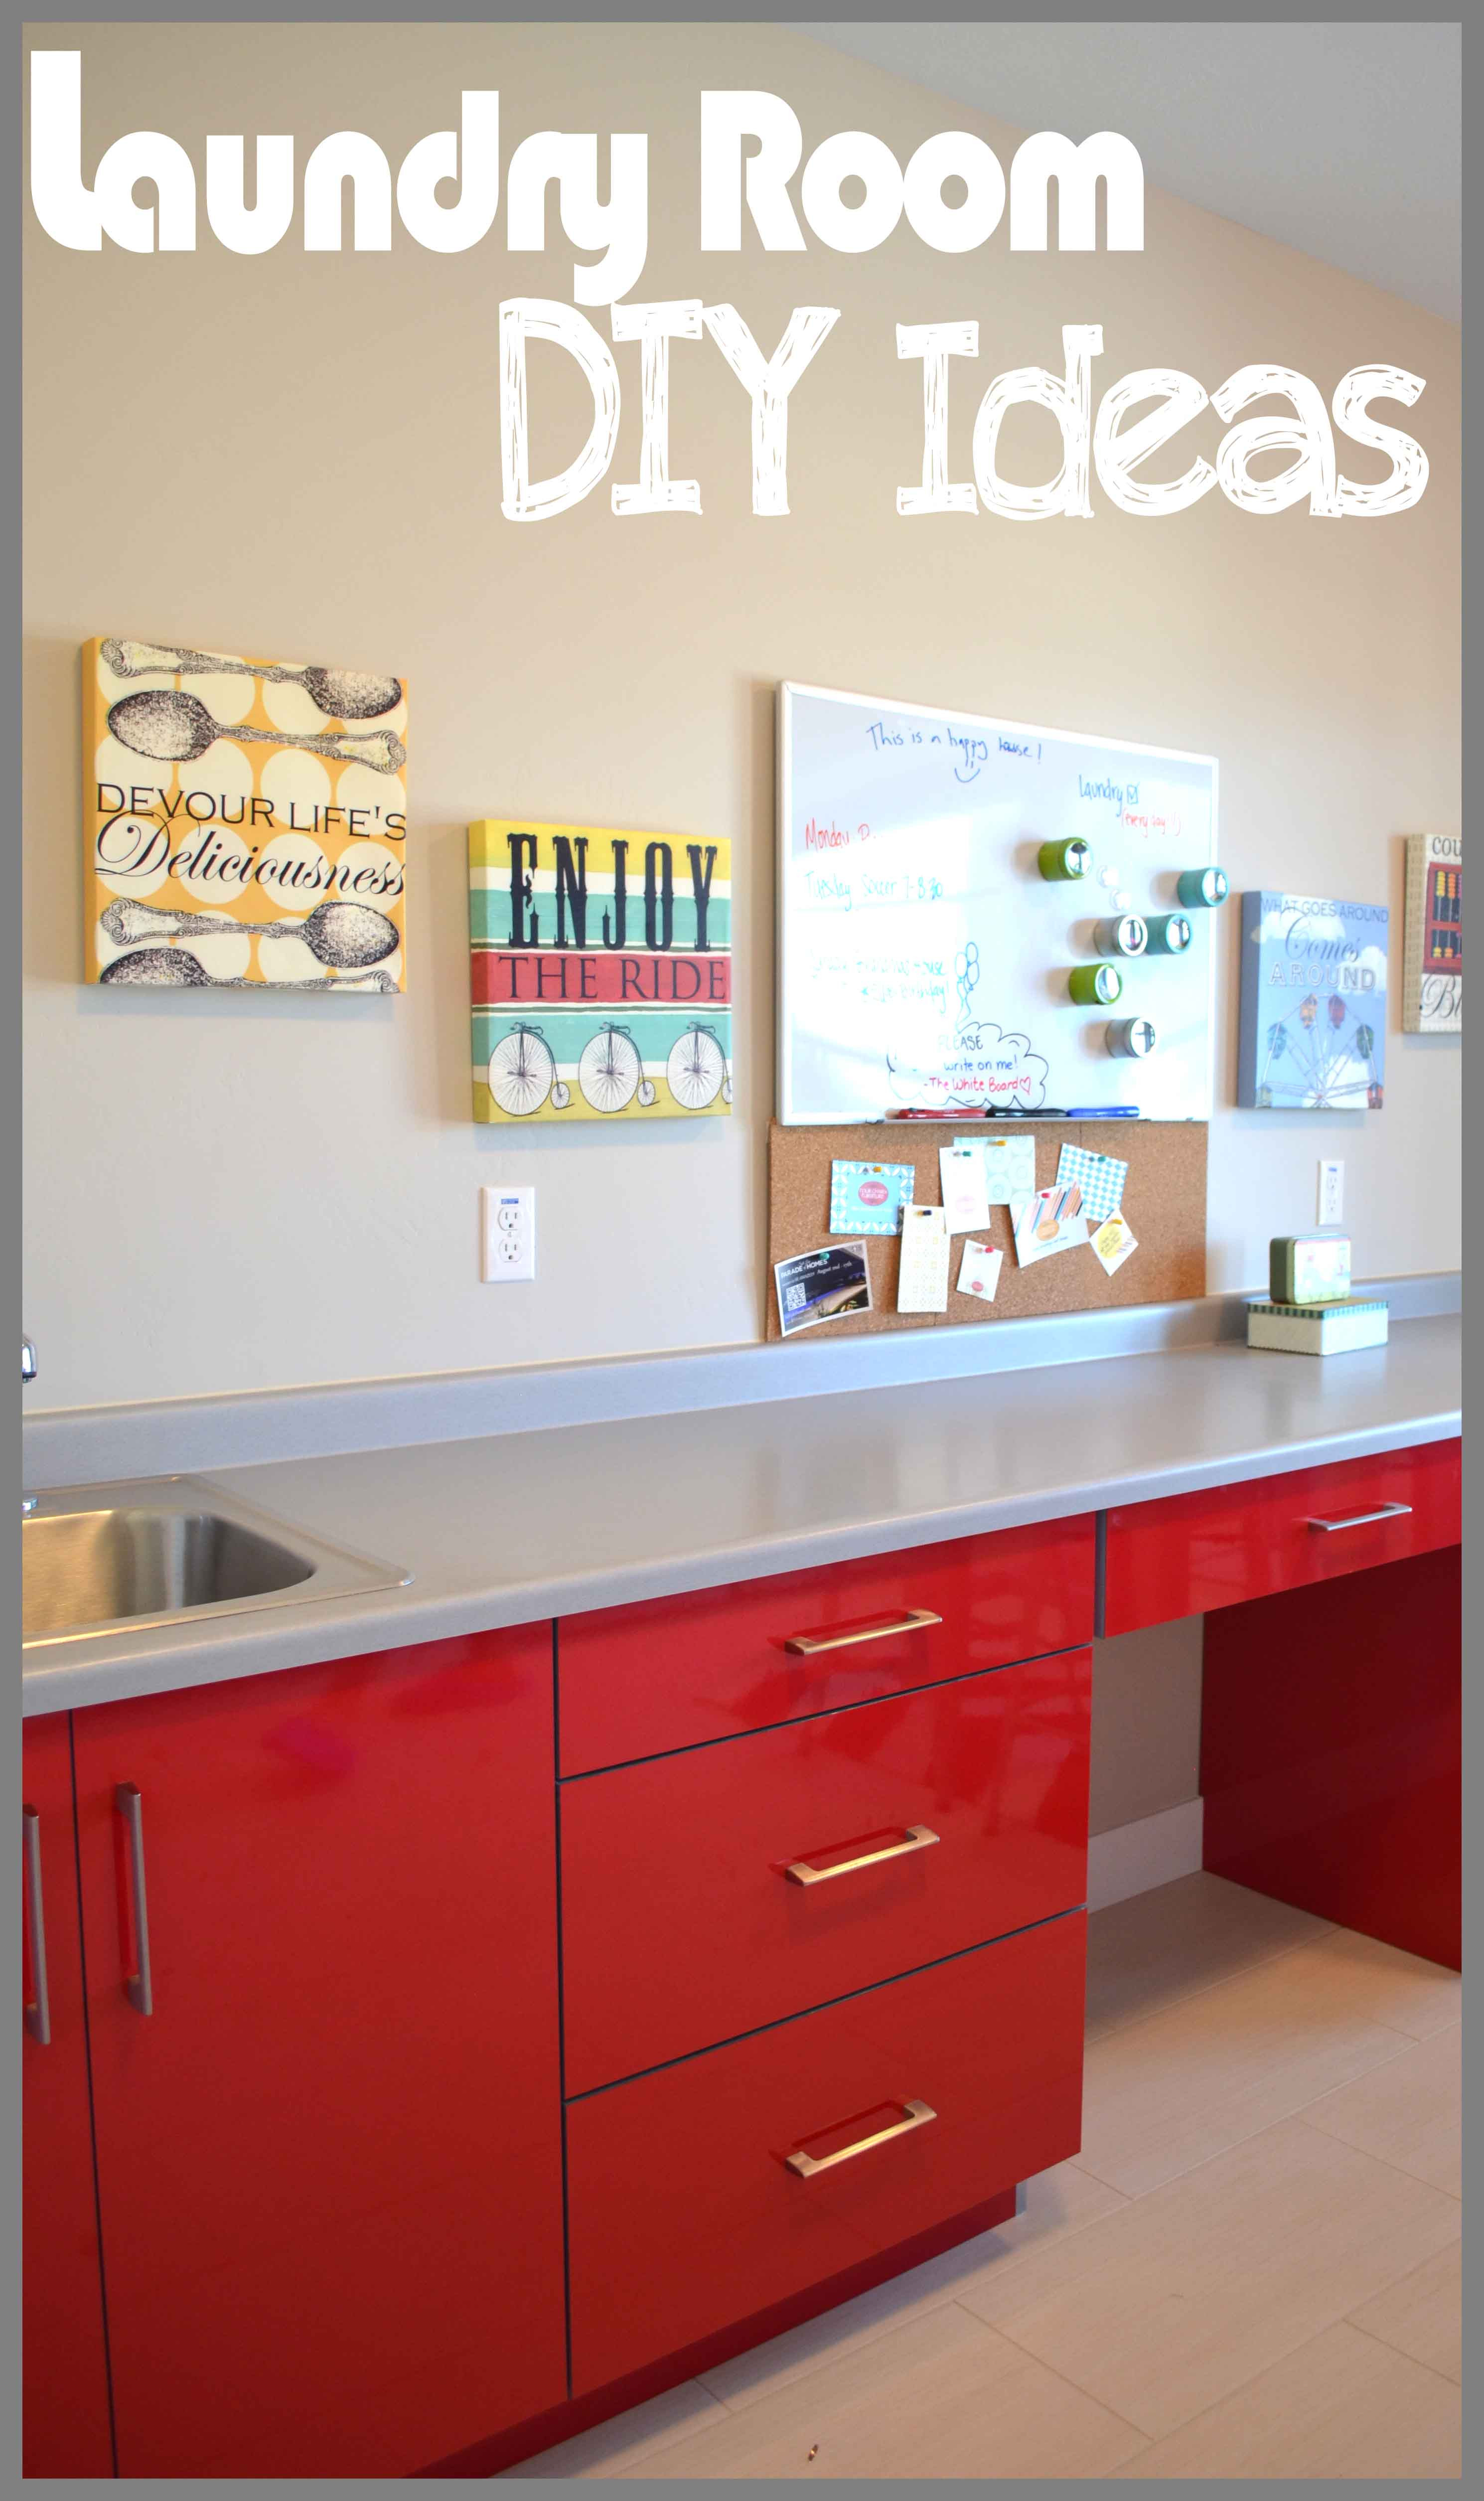 Best ideas about Diy Laundry Room Ideas . Save or Pin Laundry Room DIY Projects Now.